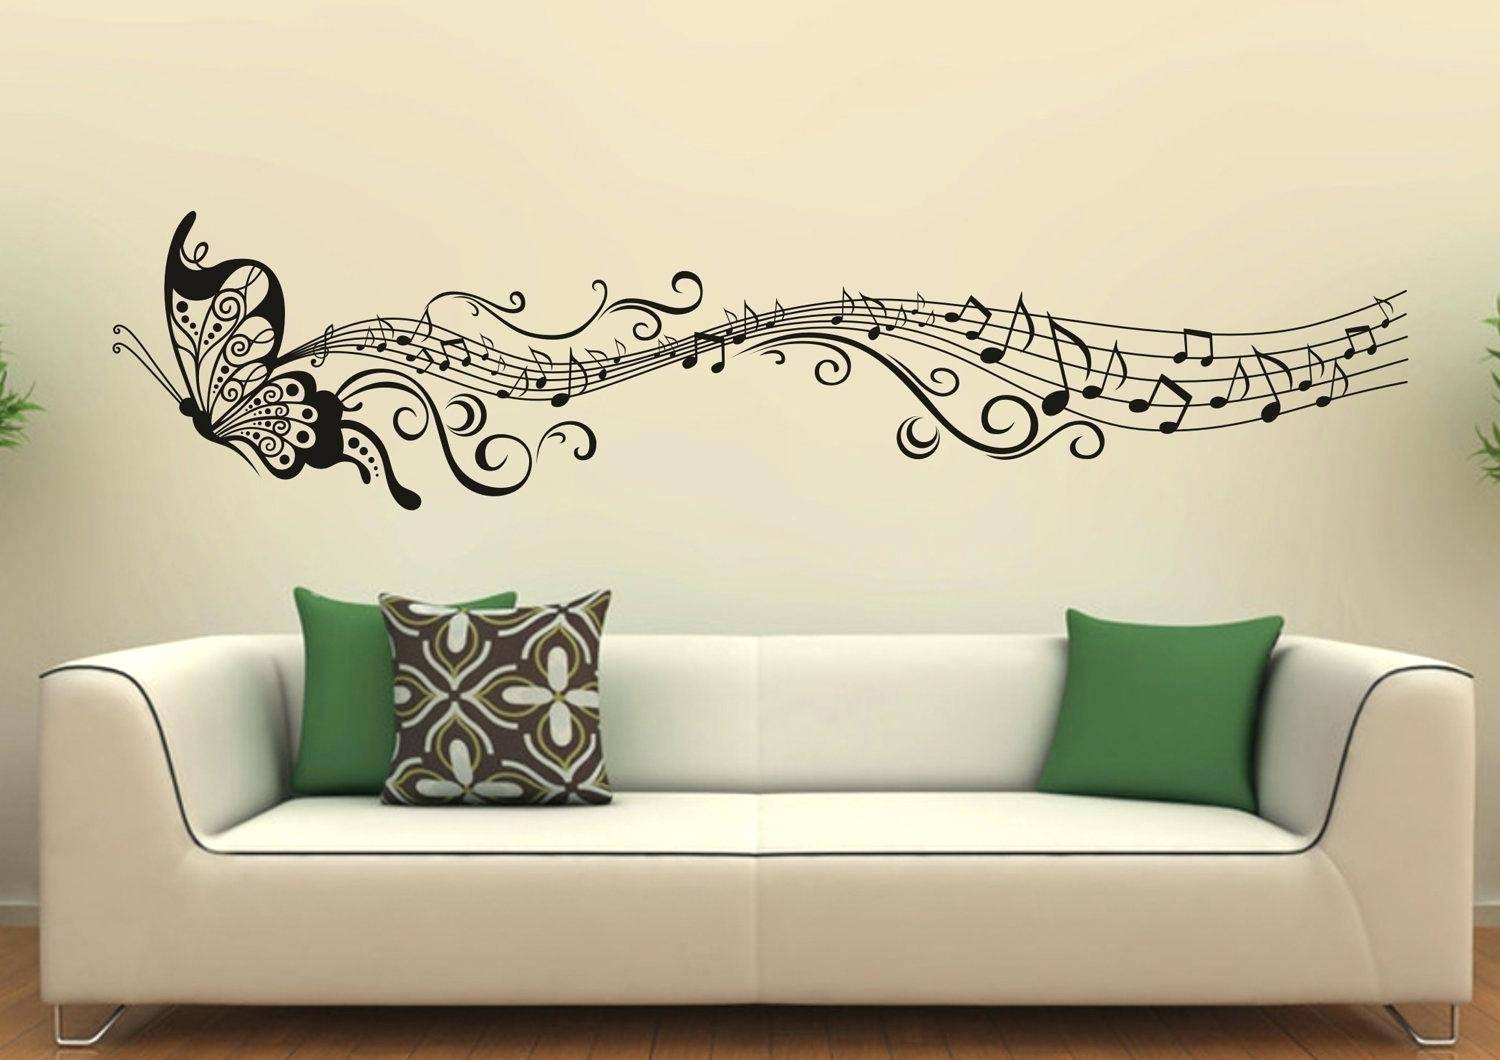 Wall Decor: Fascinating Music Themed Wall Decor Design (View 21 of 25)